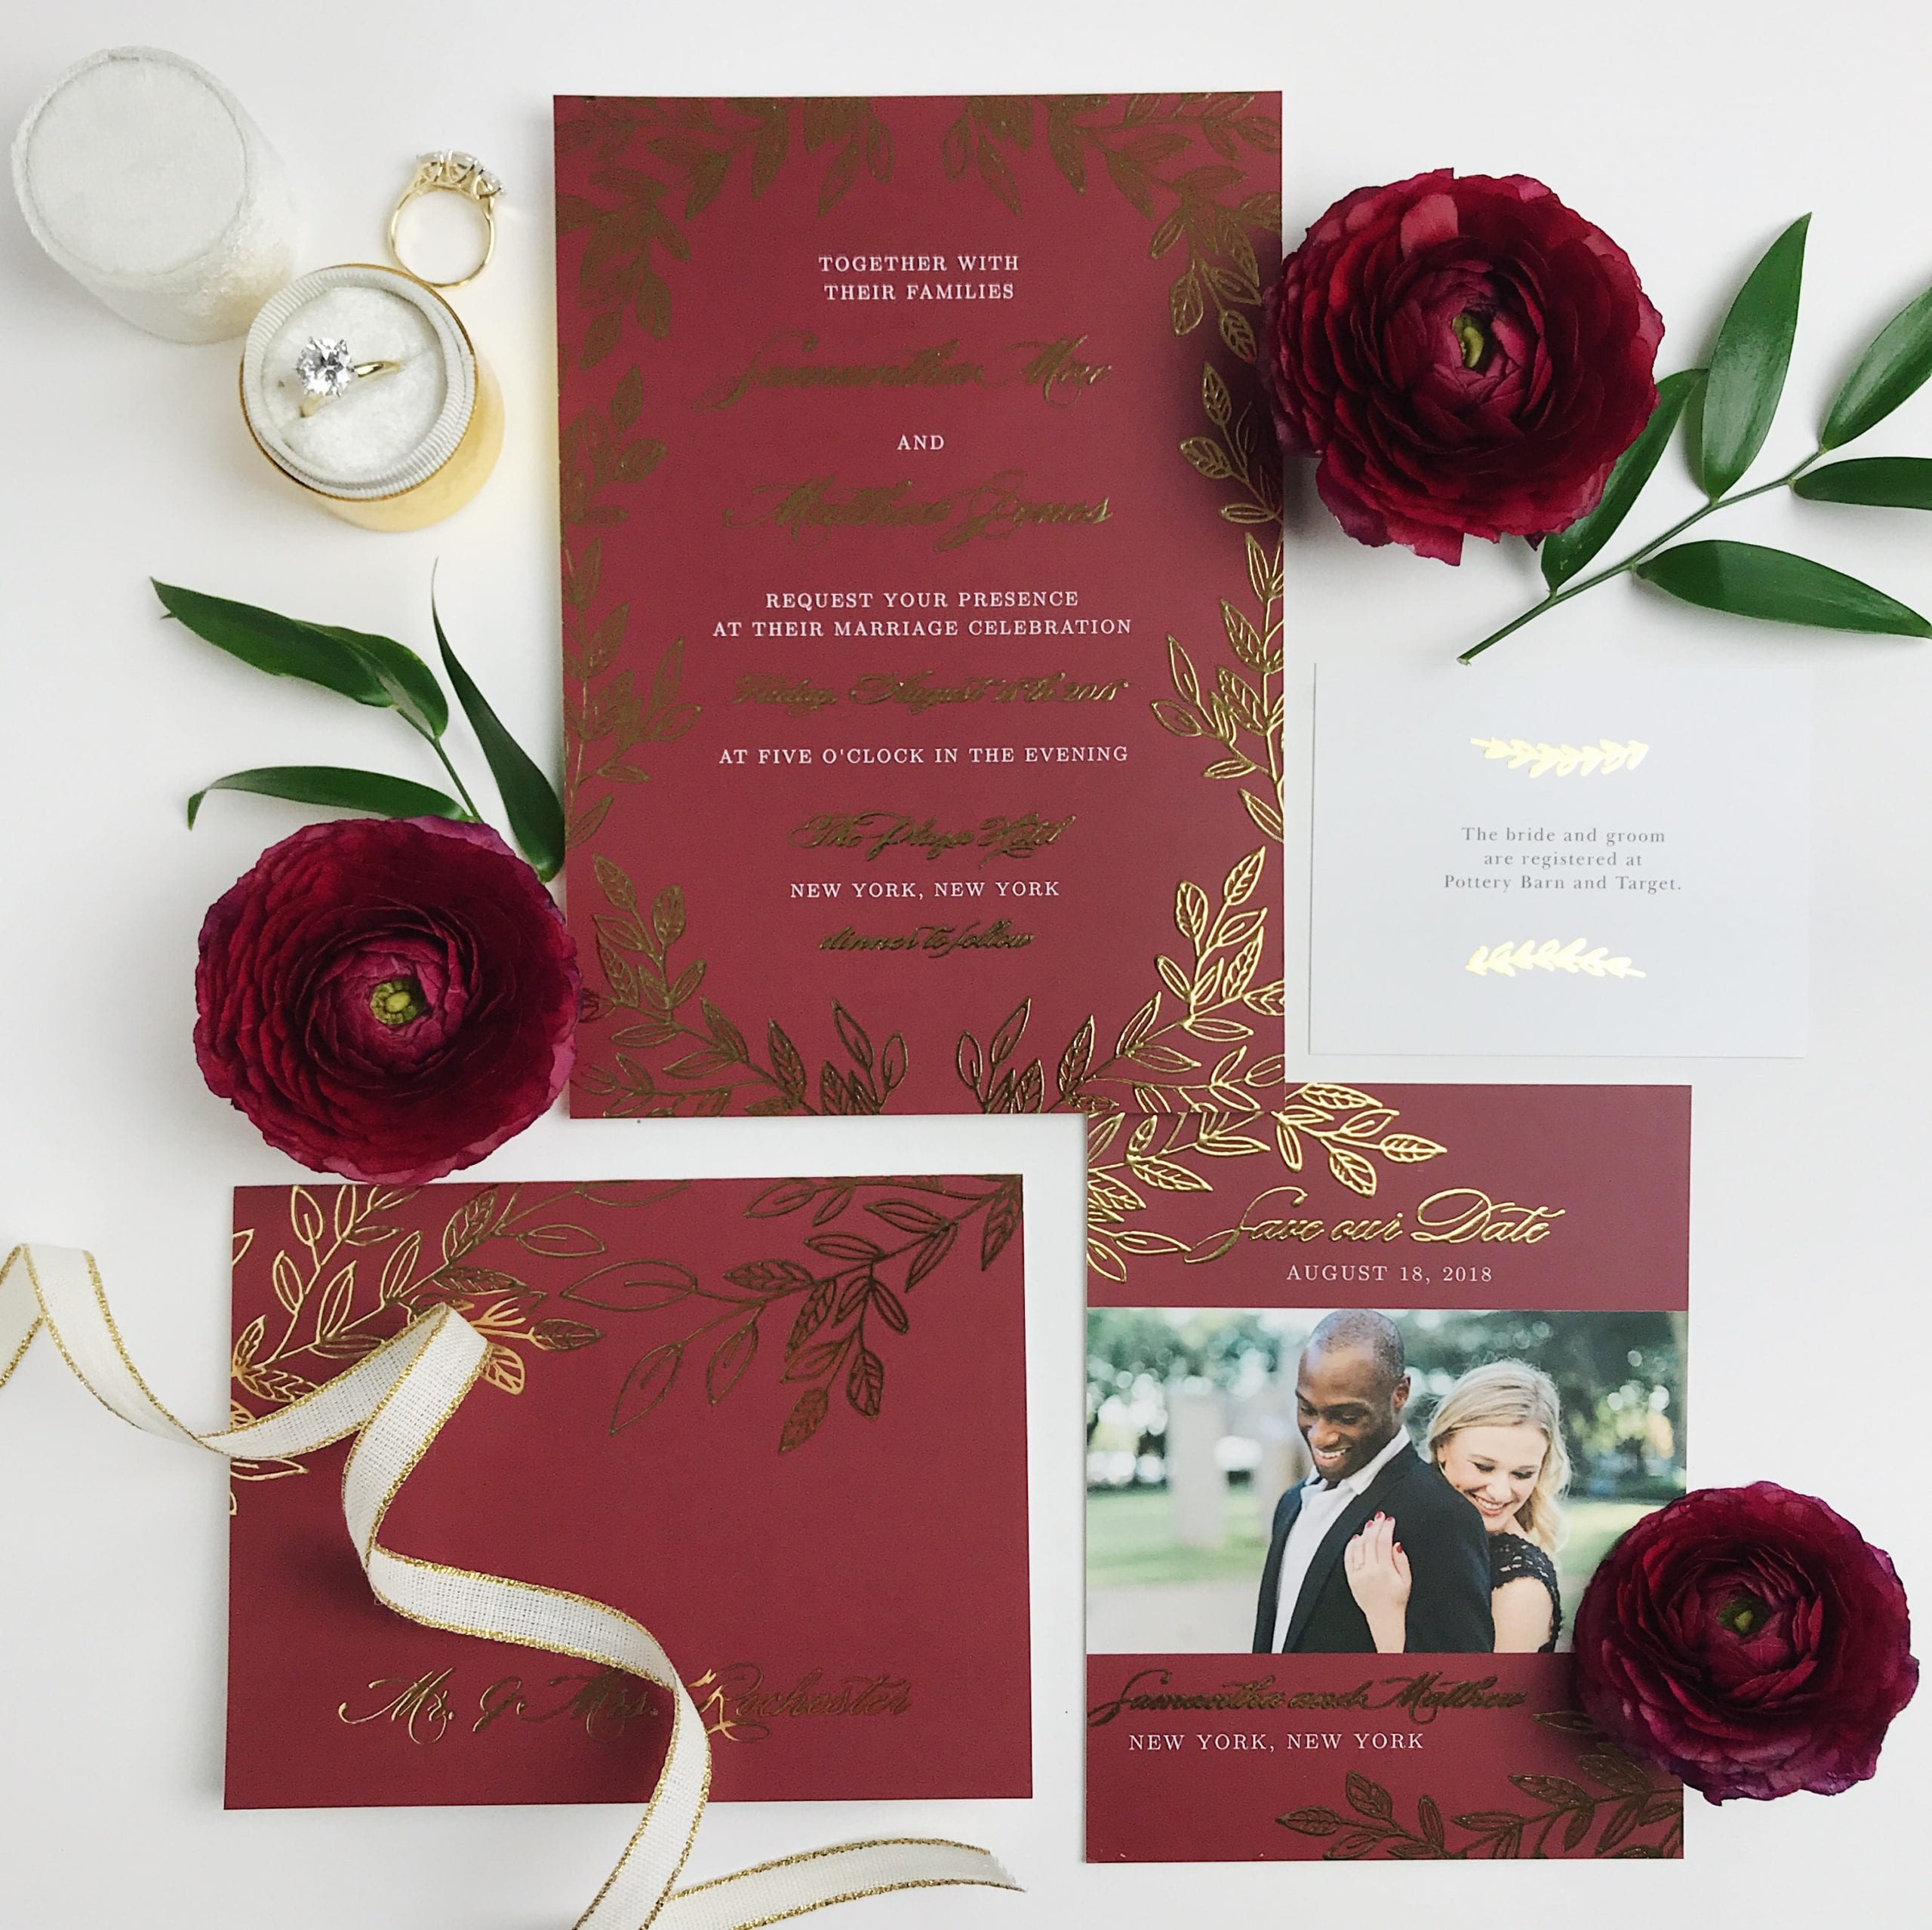 Wedding Invitation Tips and FREE Printable Wedding Planner!